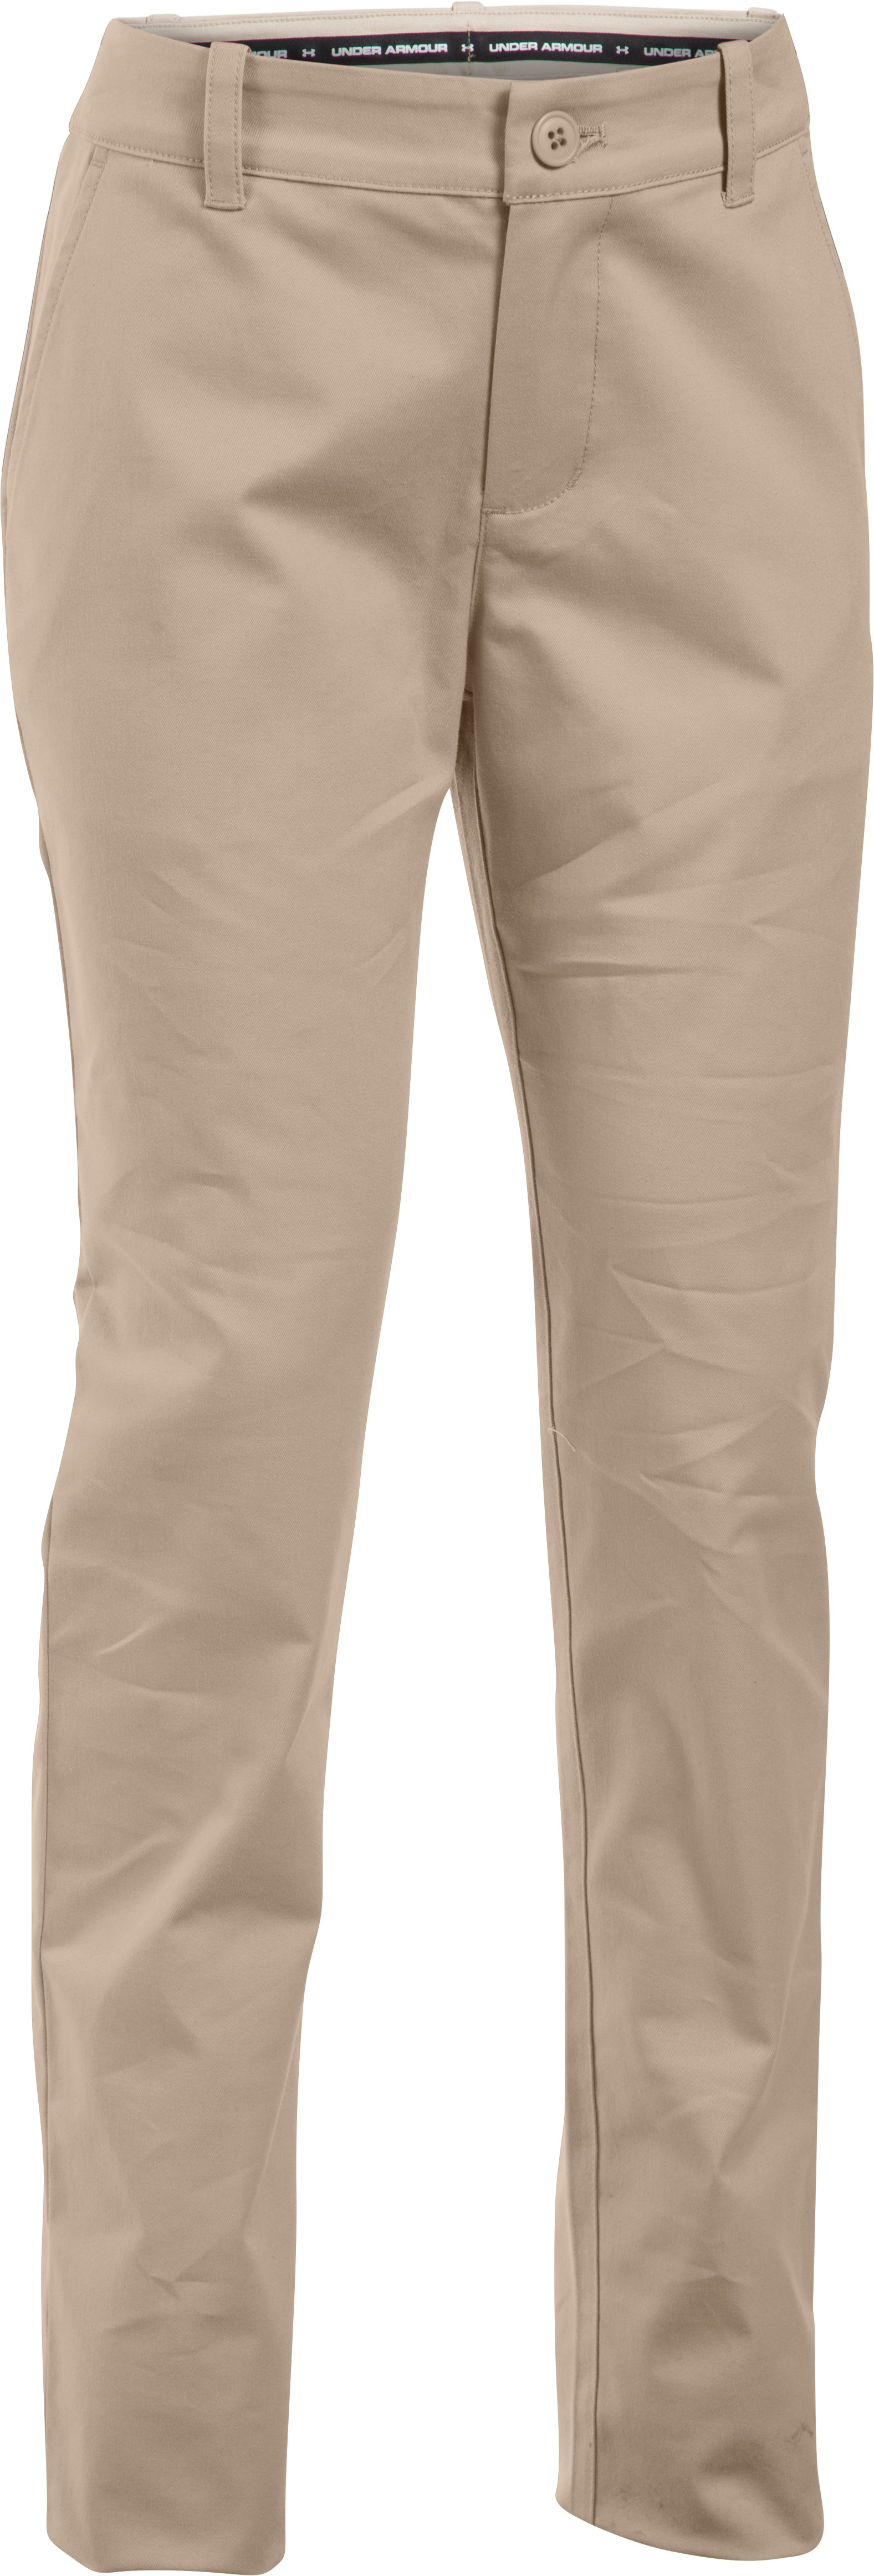 Girls' UA Uniform Chino Pants, Desert Sand, undefined